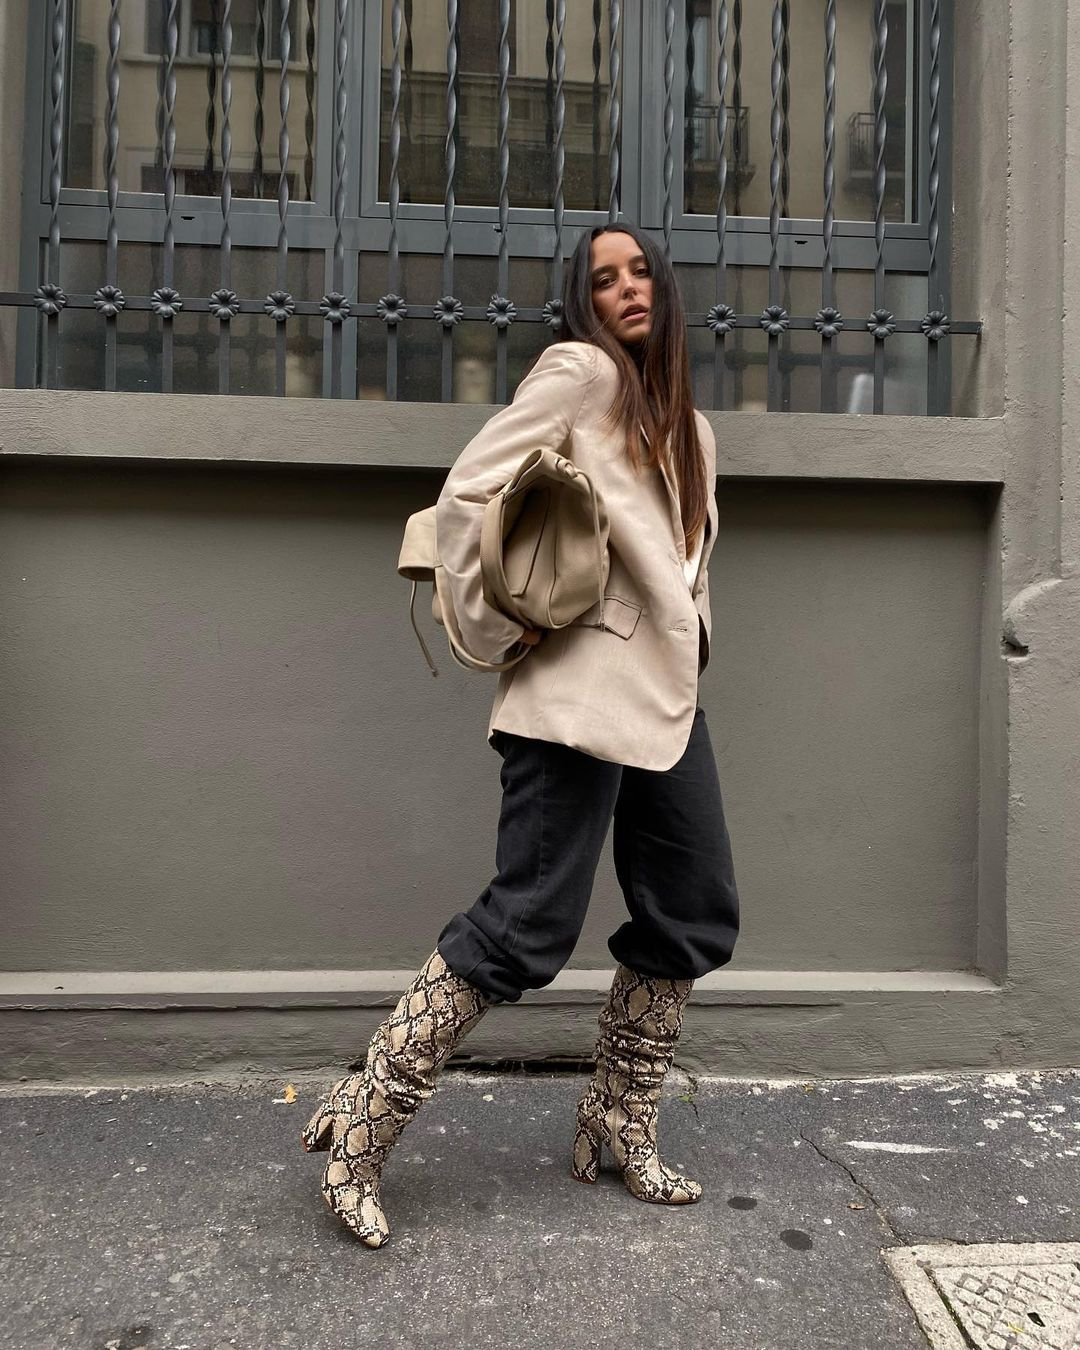 18 Best Animal Print Boots to Shop for Fall and Winter —@sarahbrezel in an oversized blazer, baggy jeans, and snake-print knee-high boots